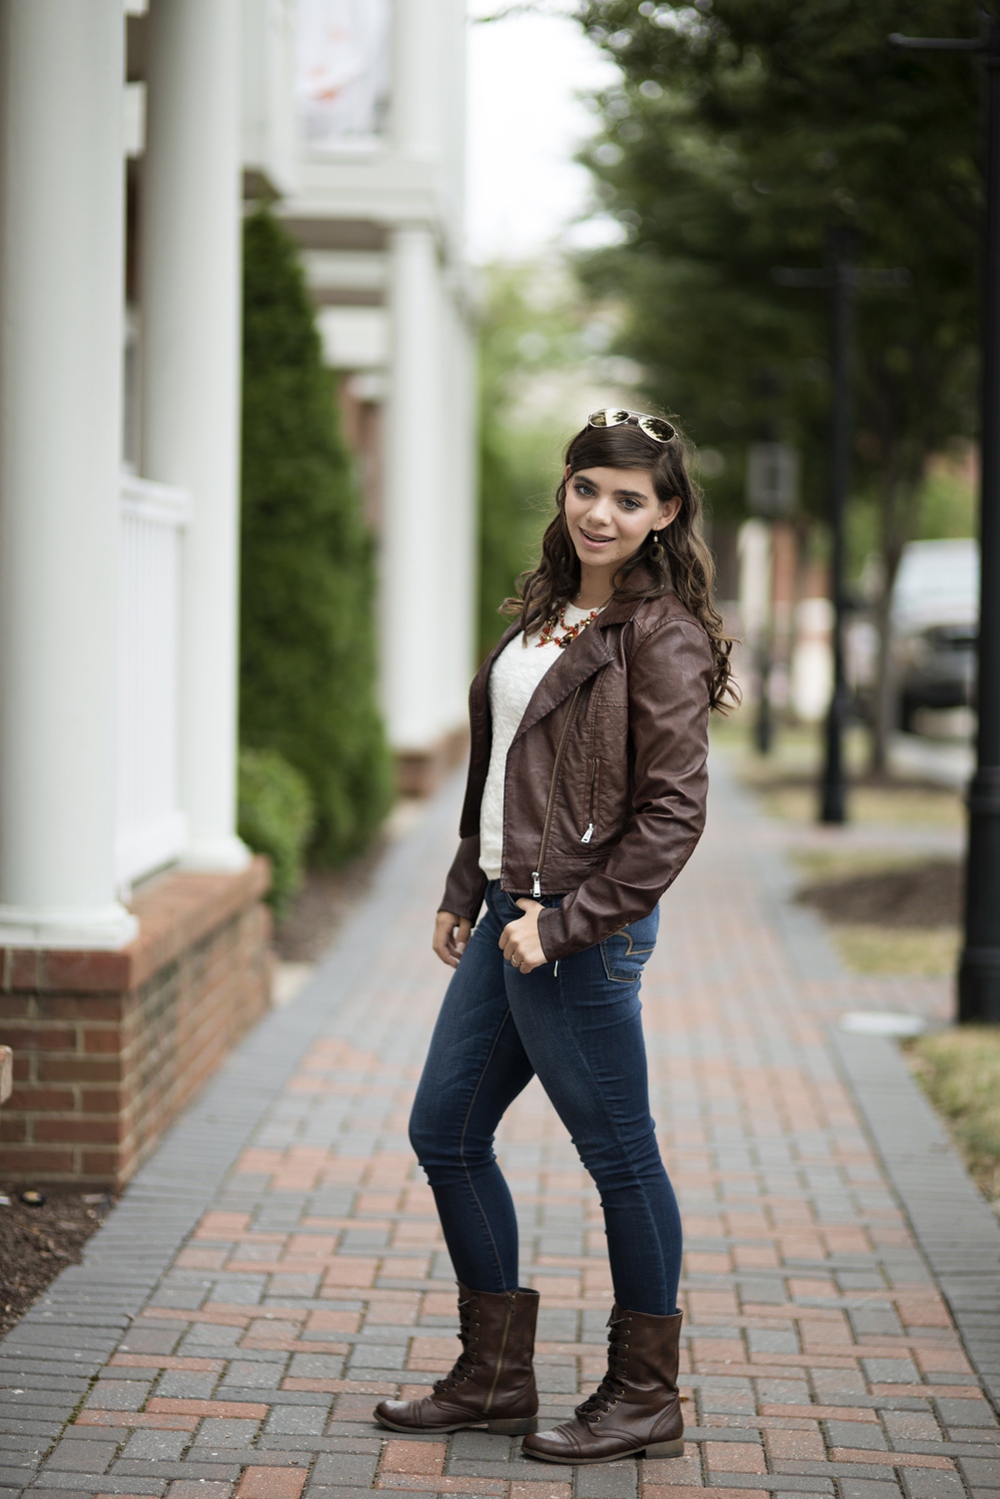 Downtown Hampton, Virginia senior portraits | leather jacket and sunglasses